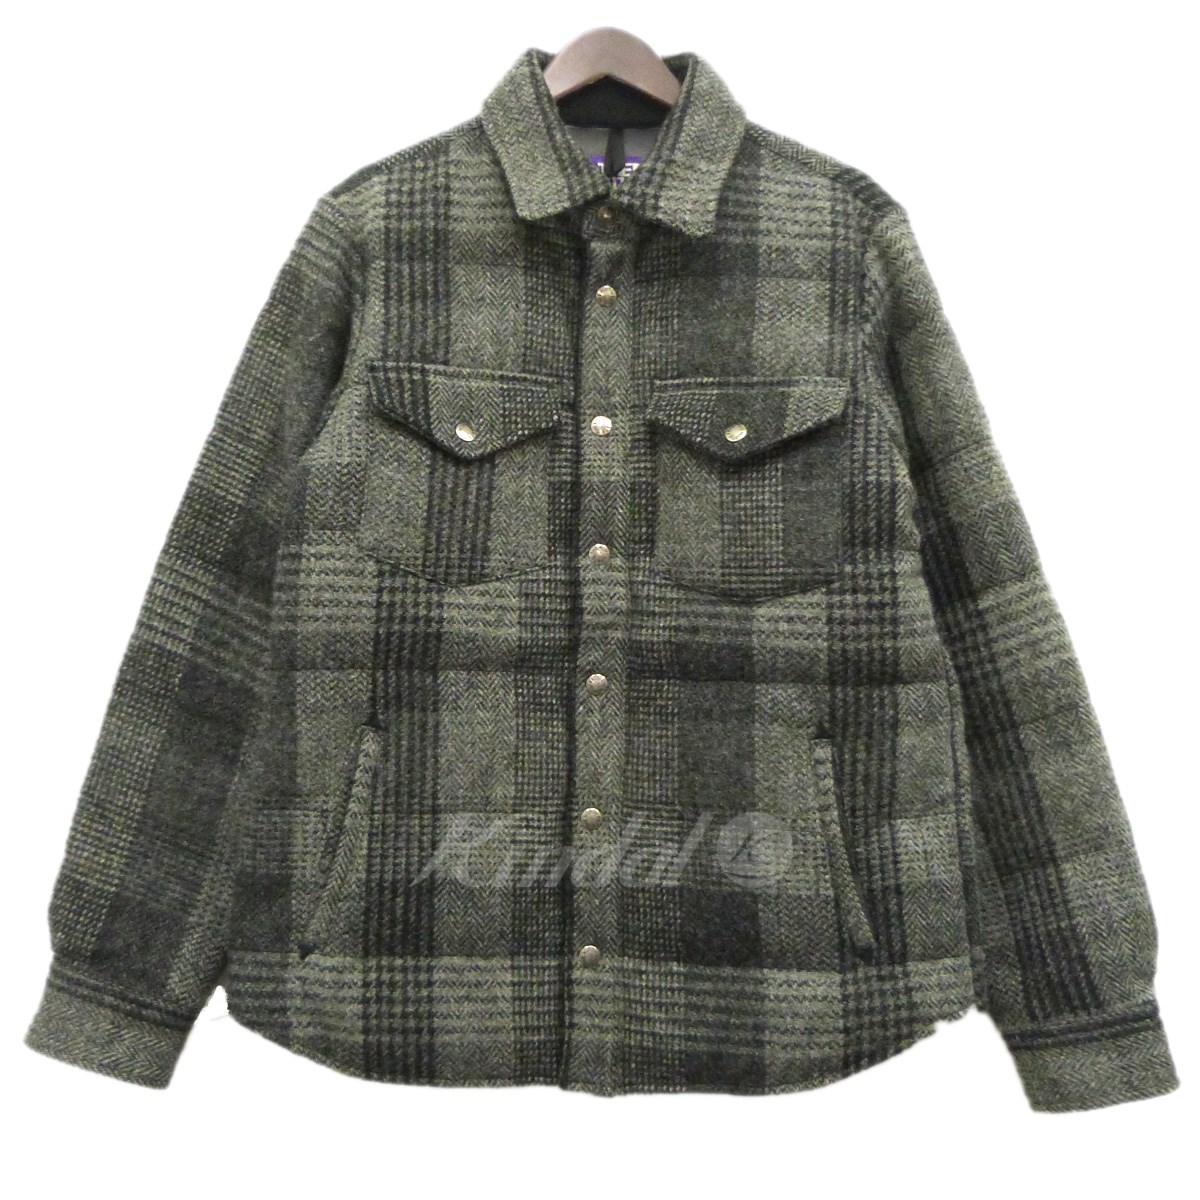 Kindal: THE NORTH FACE PURPLE LABEL Harris Tweed Check